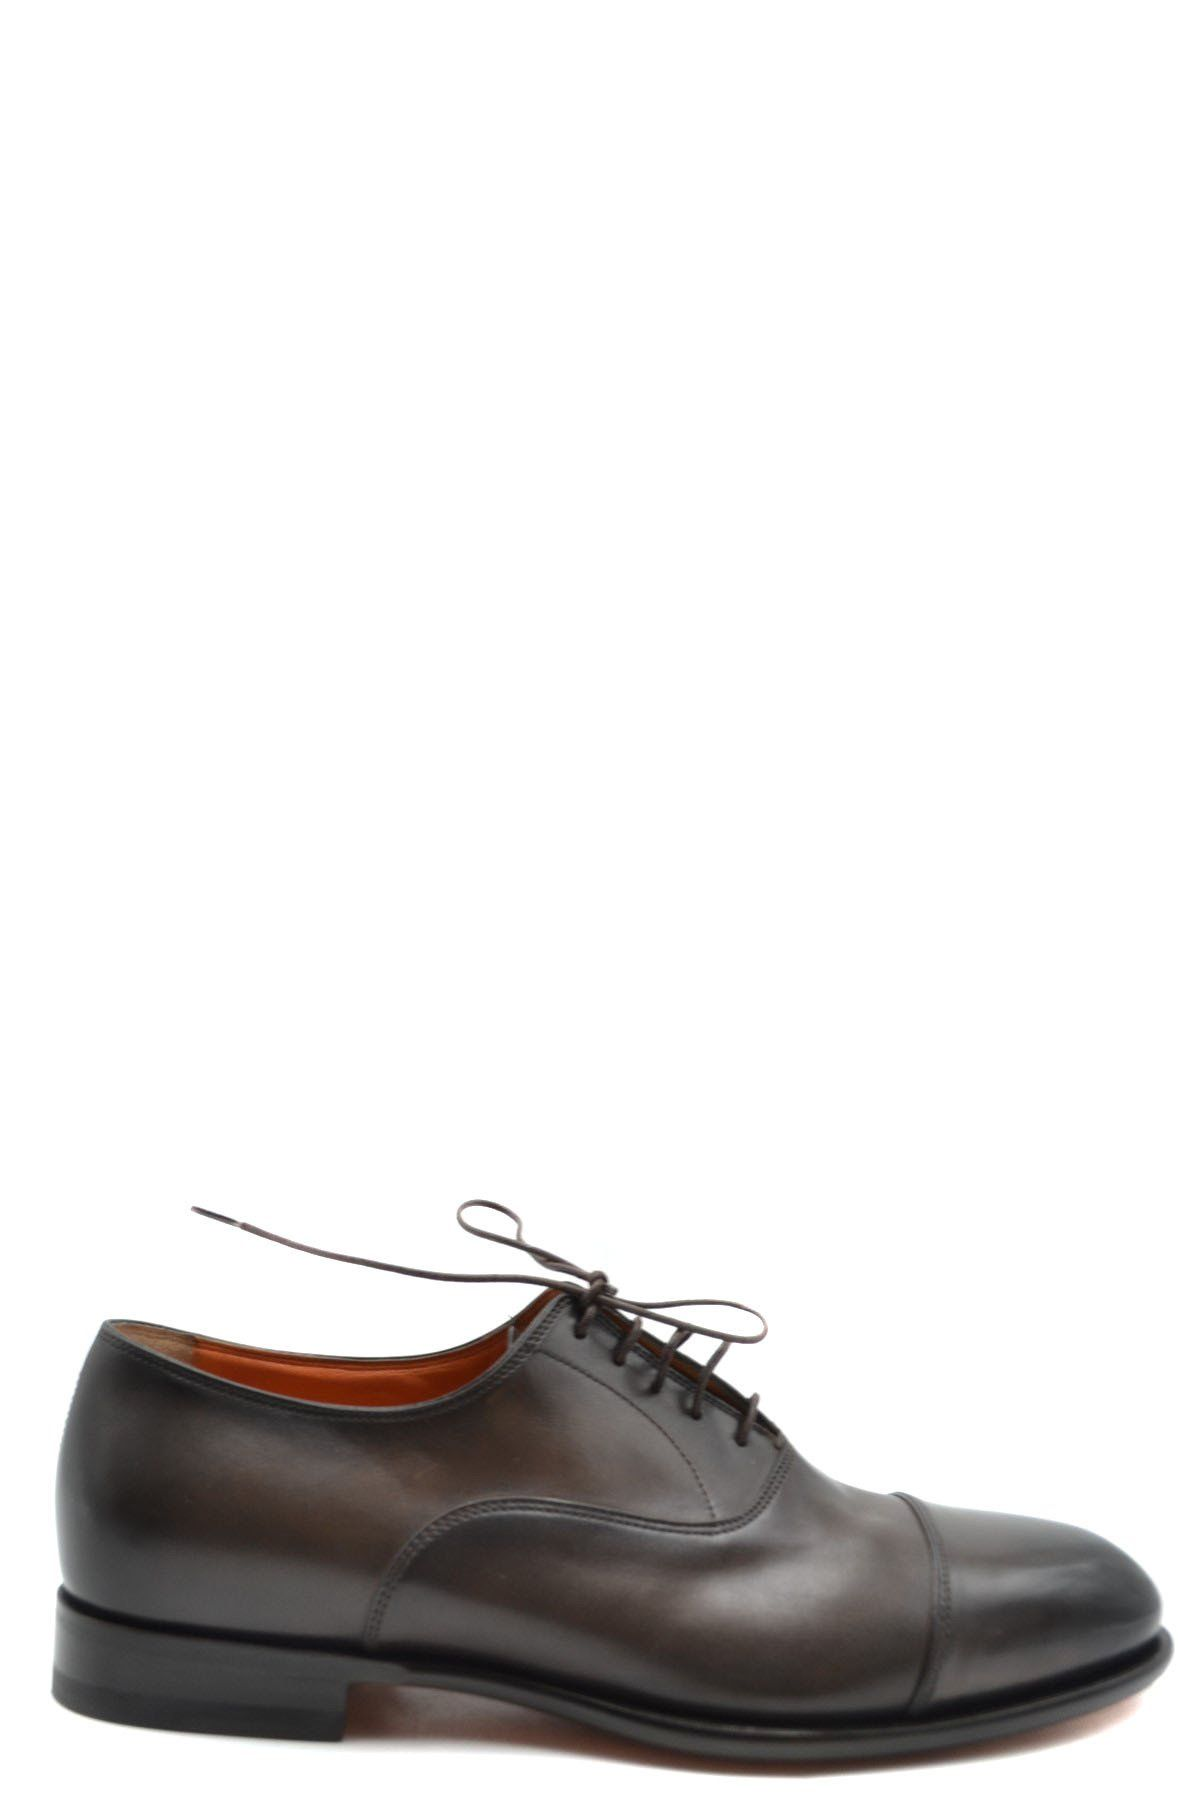 Santoni Men's Lace Ups Shoes In Brown